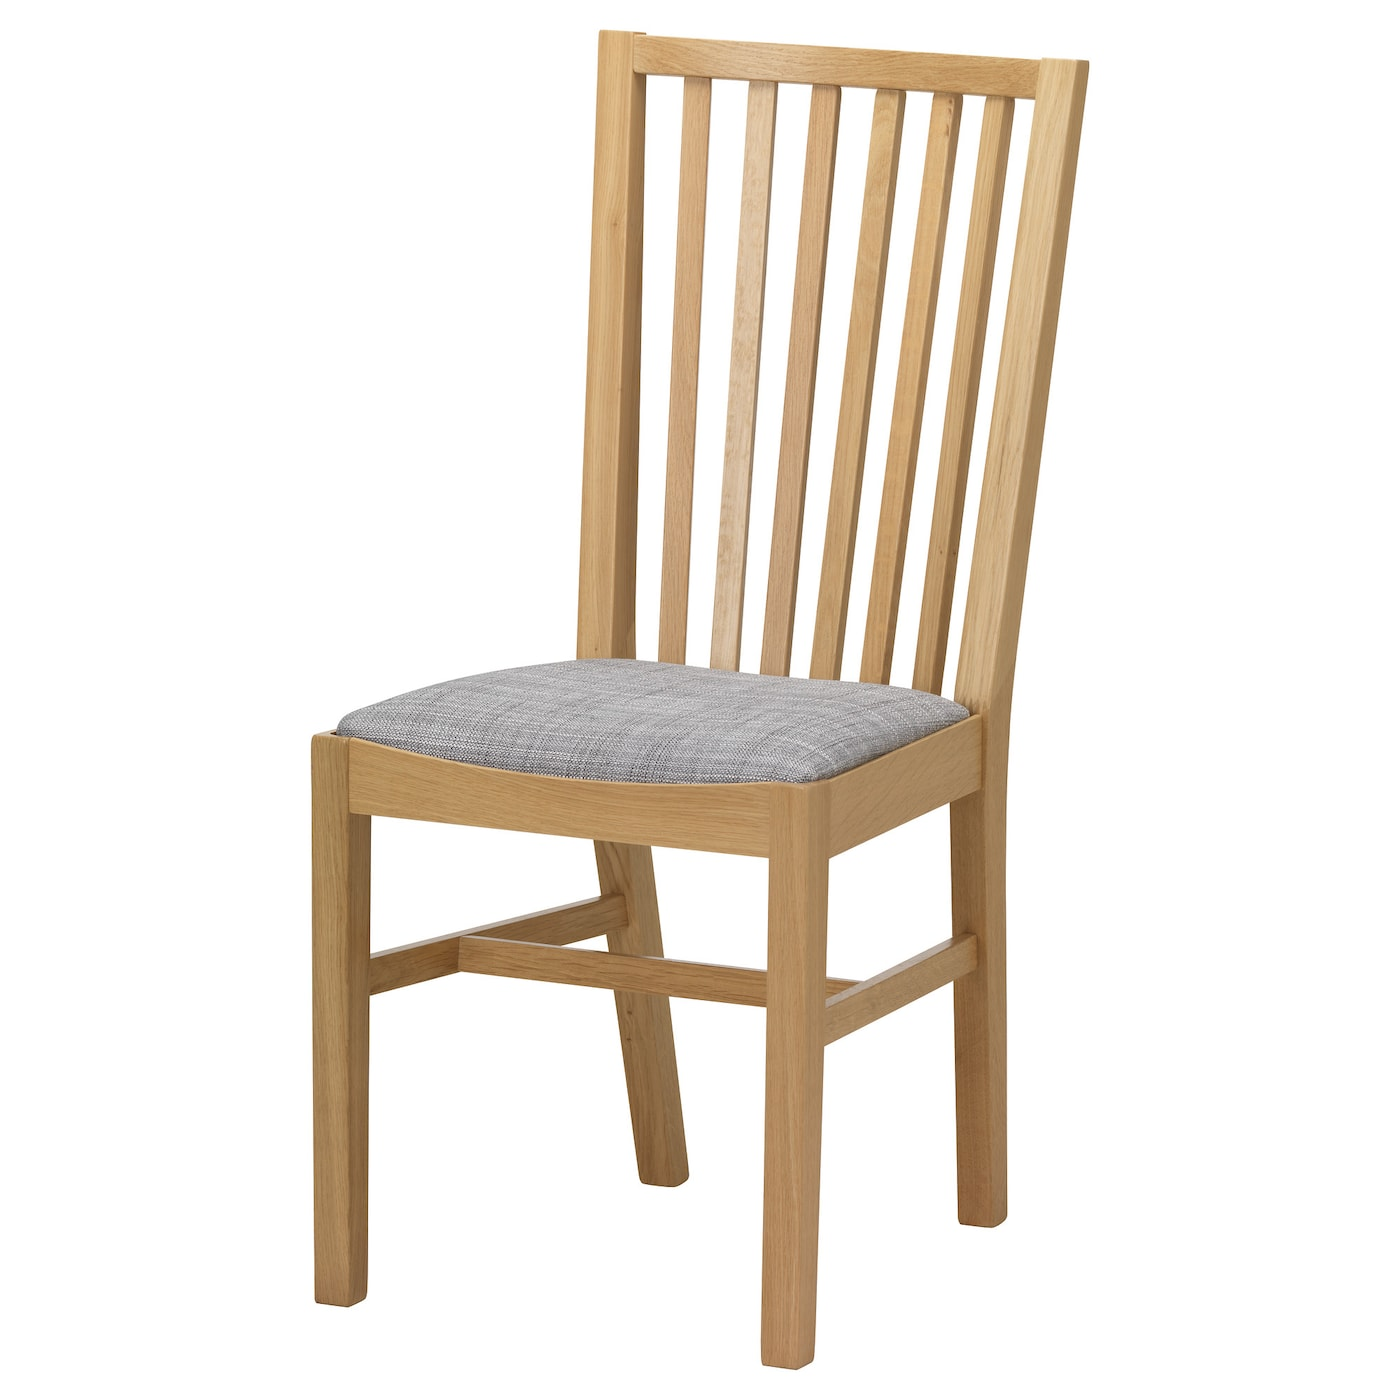 Norrn s chair oak isunda grey ikea for High table and chairs ikea